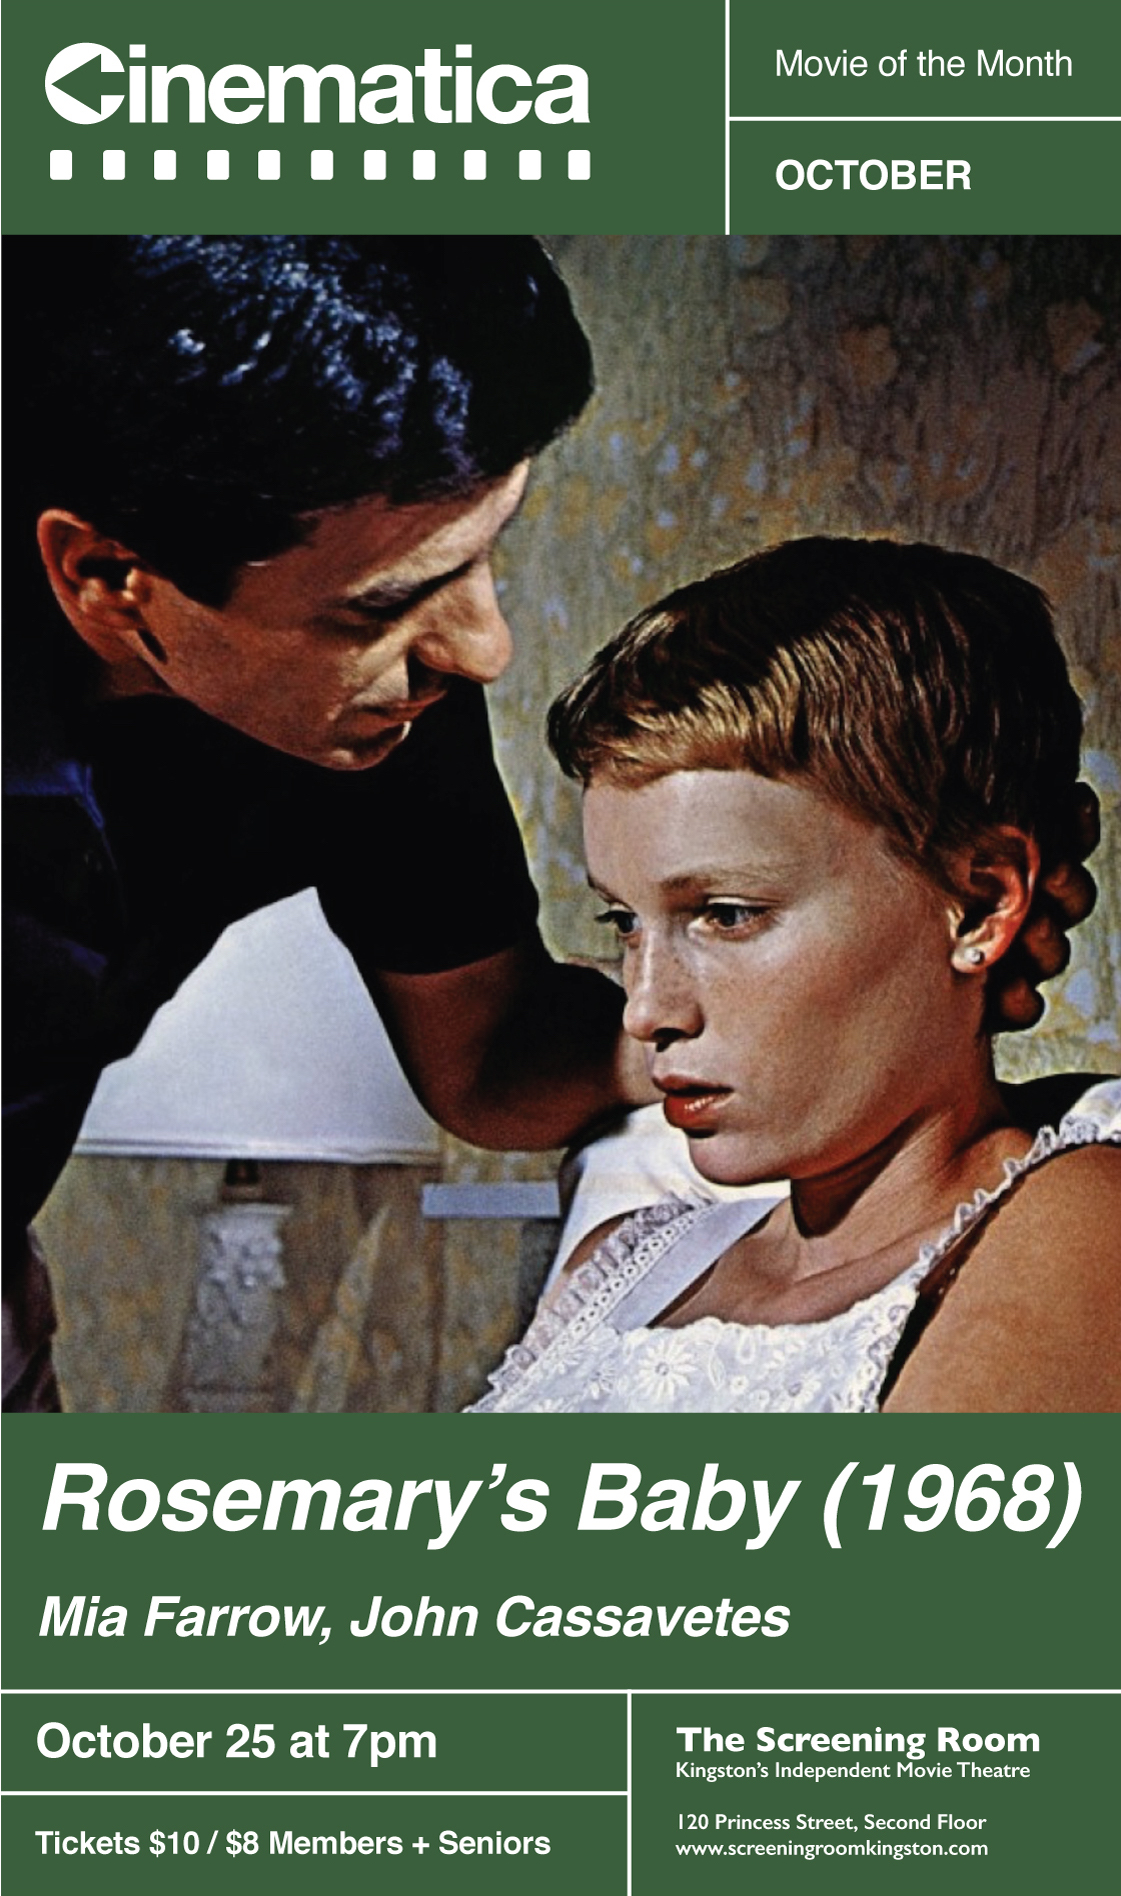 the elements of belief in the horror film rosemarys baby Rosemary's baby stands alone in the american new wave movement as a film that insinuates america's social upheaval rather than explicitly showing it to viewers, as seen in films such as the graduate (nichols, 1967) and medium cool (wexler, 1969.